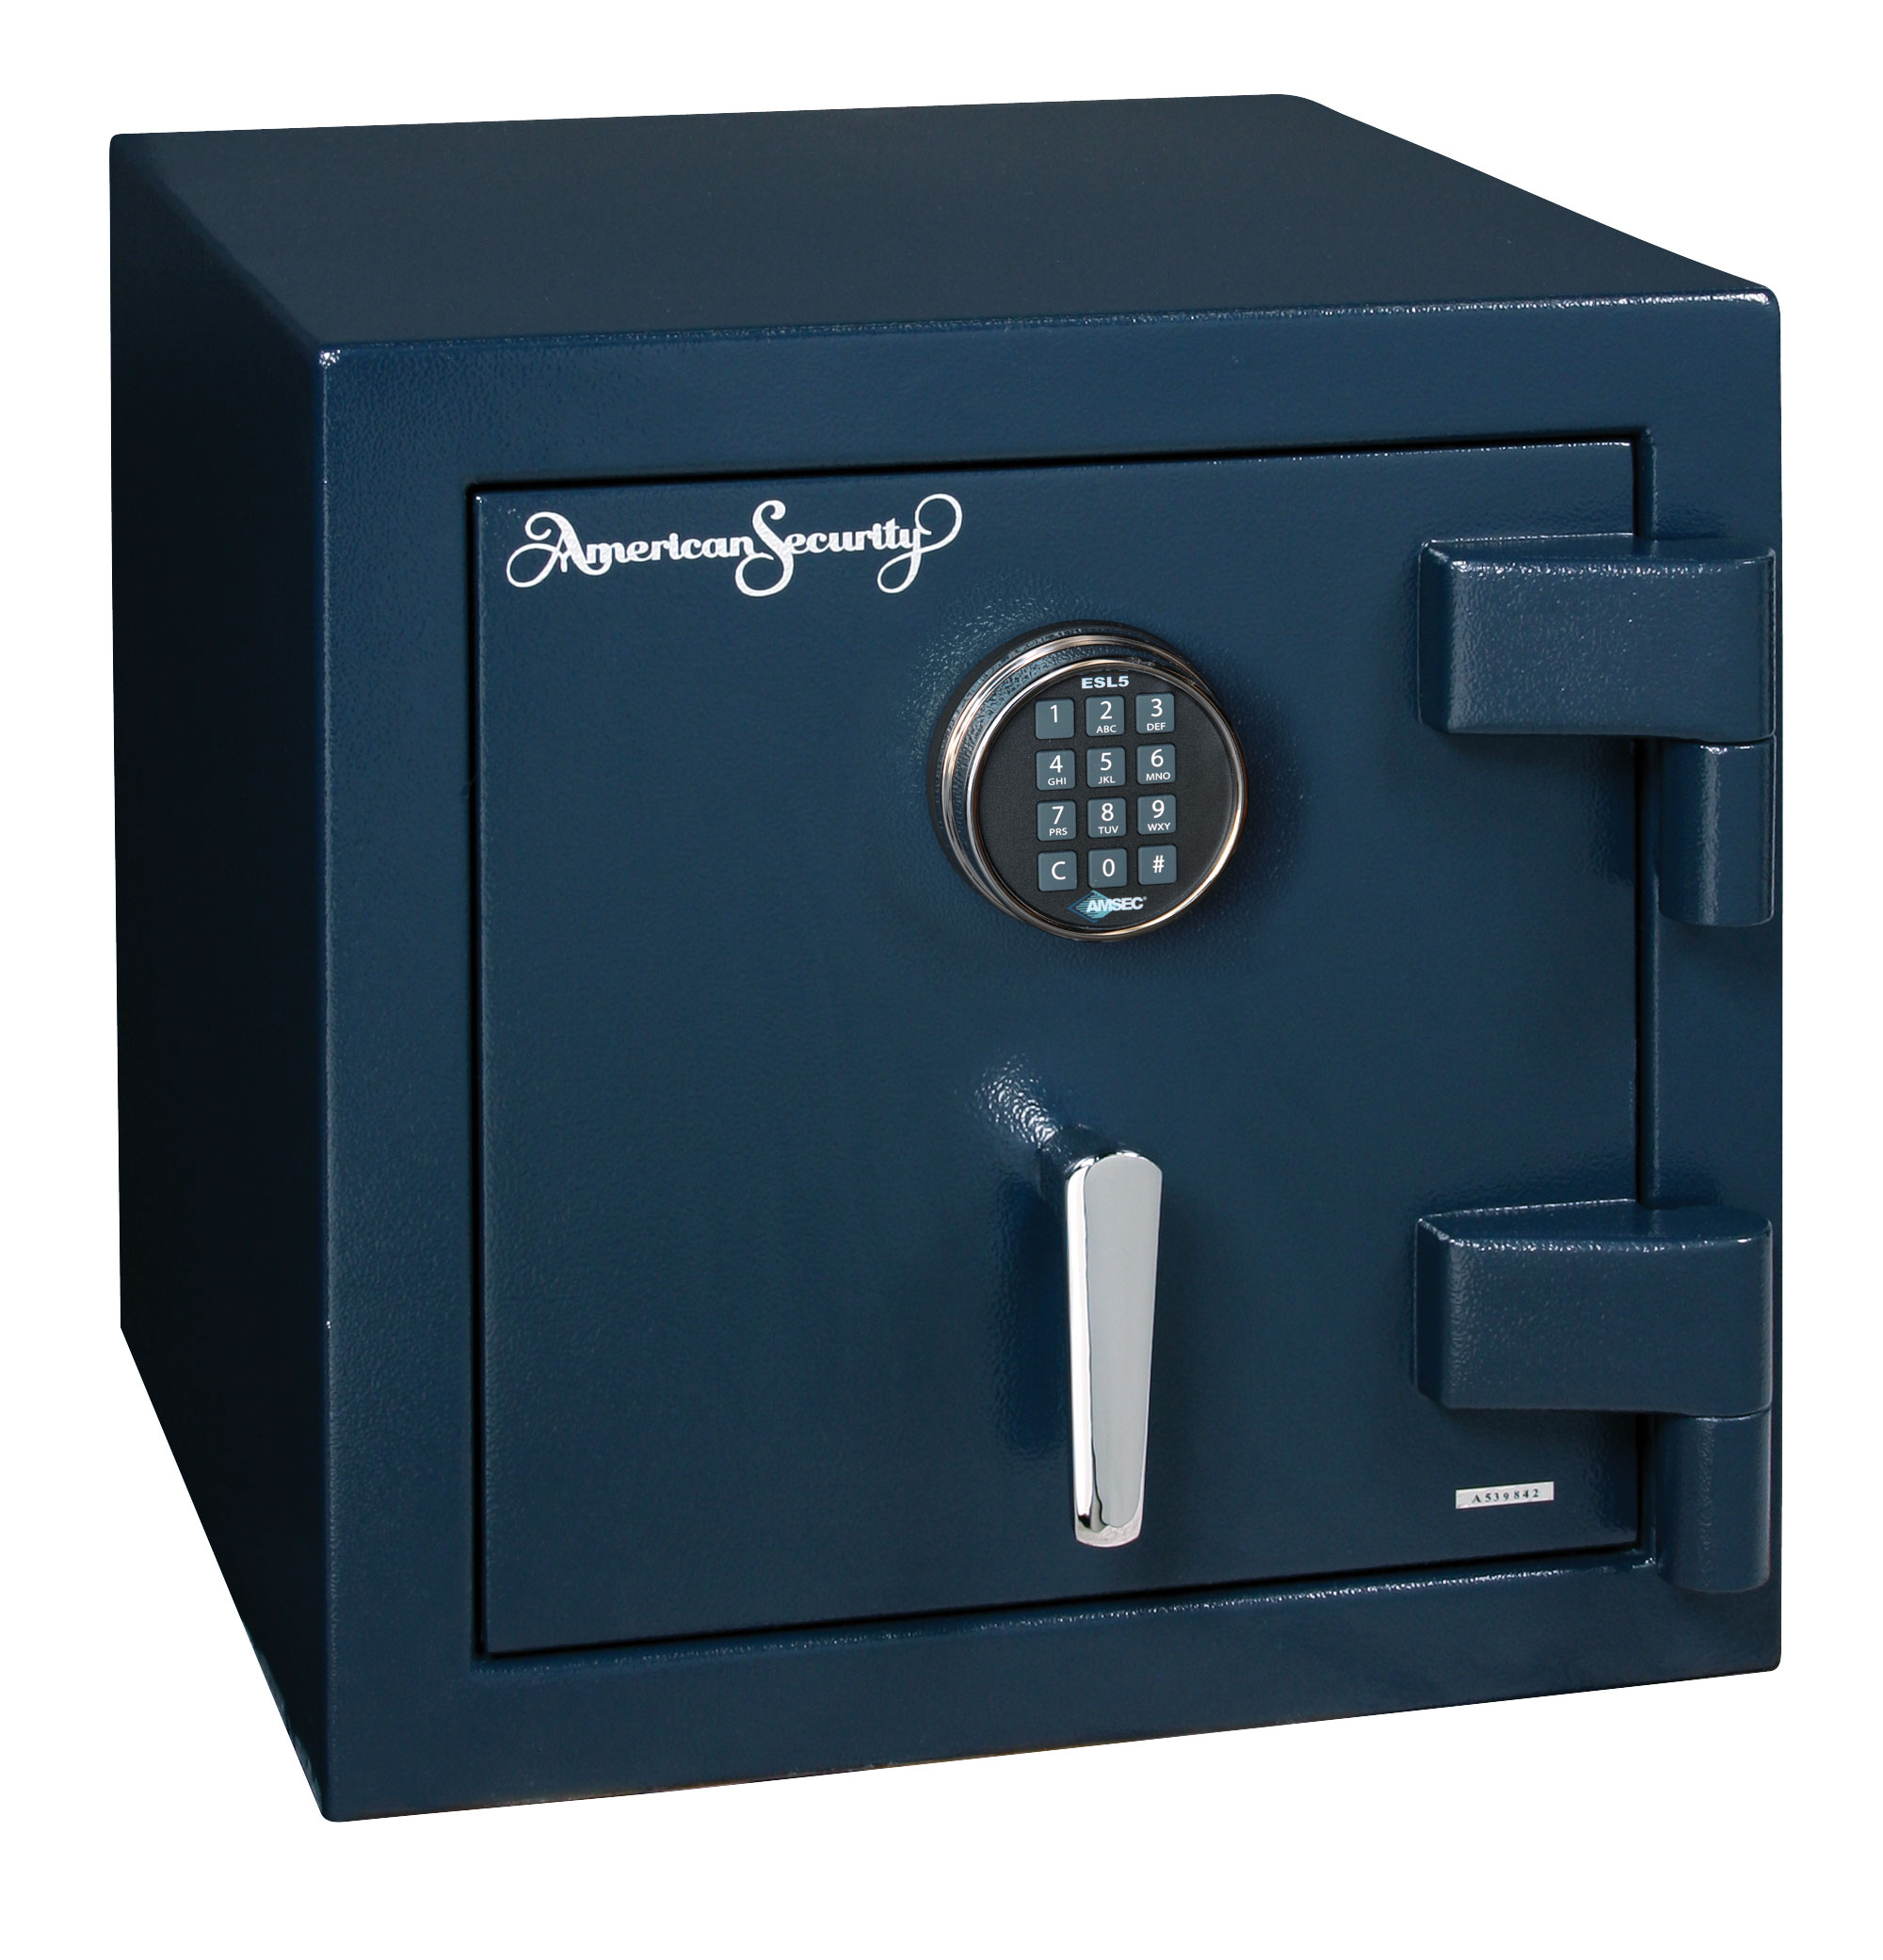 home security products american security am2020e5 safe resistant home 417